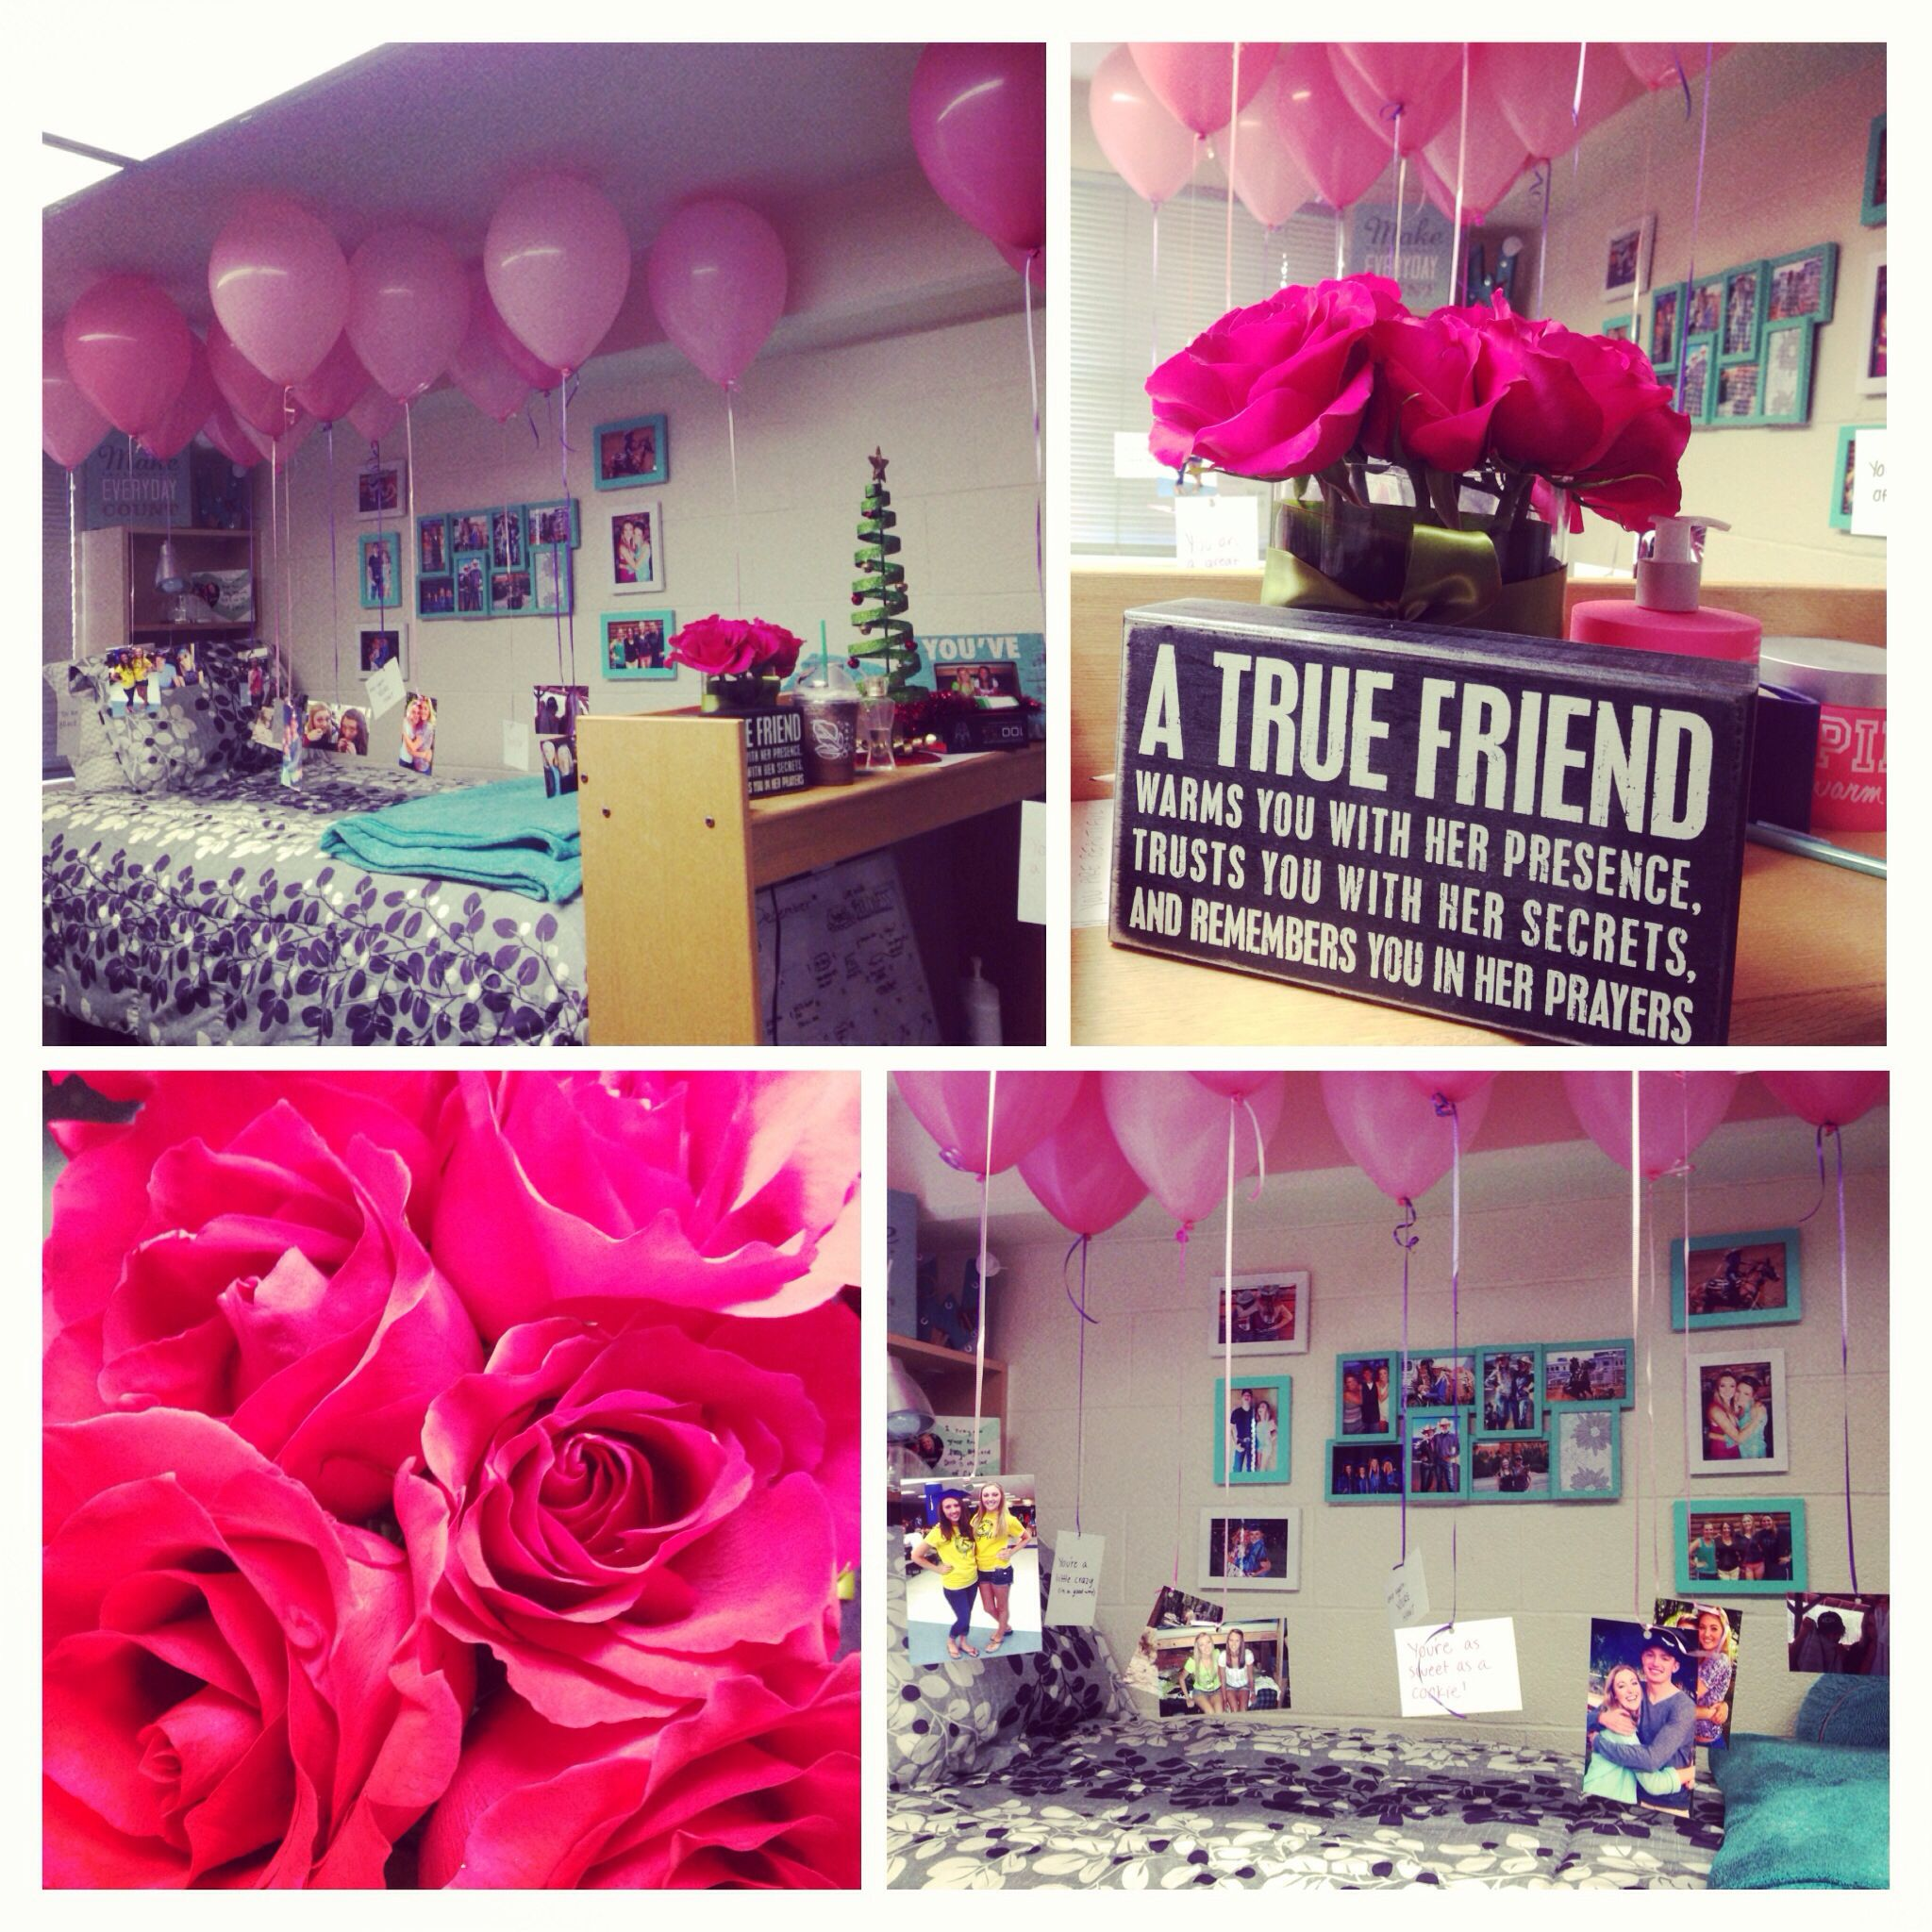 Birthday Surprise For A Best Friend Roses Wall Art And Pictures With Notes Tied To Pink Balloons In Dorm Room So Perfect